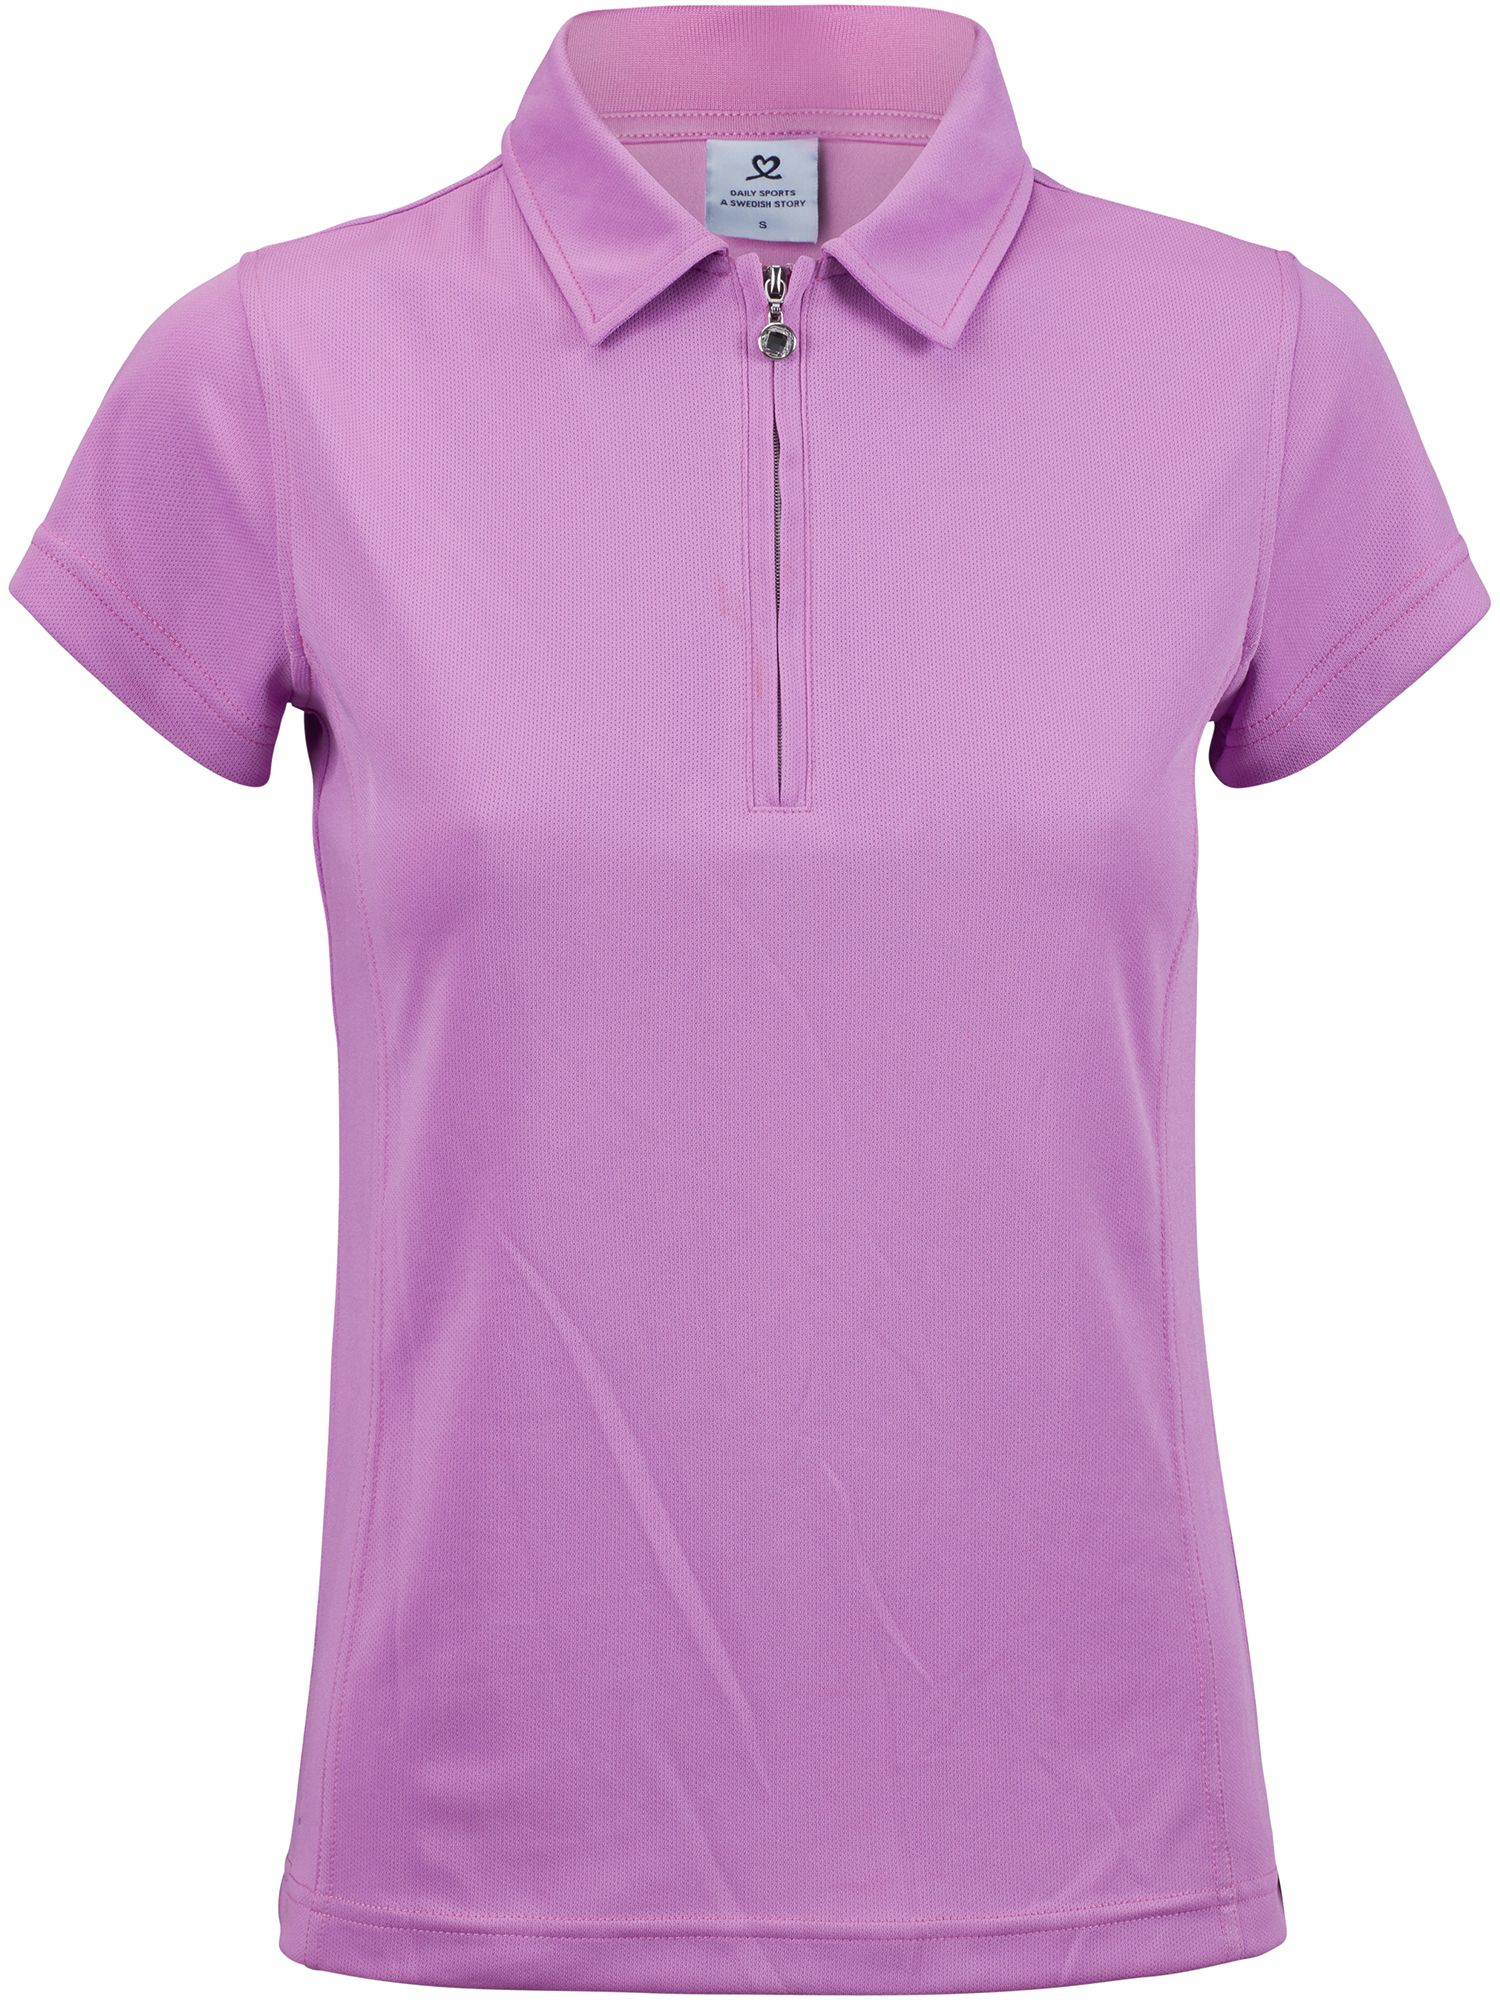 Daily Sports Macy Cap Sleeve Polo Shirt, Pink